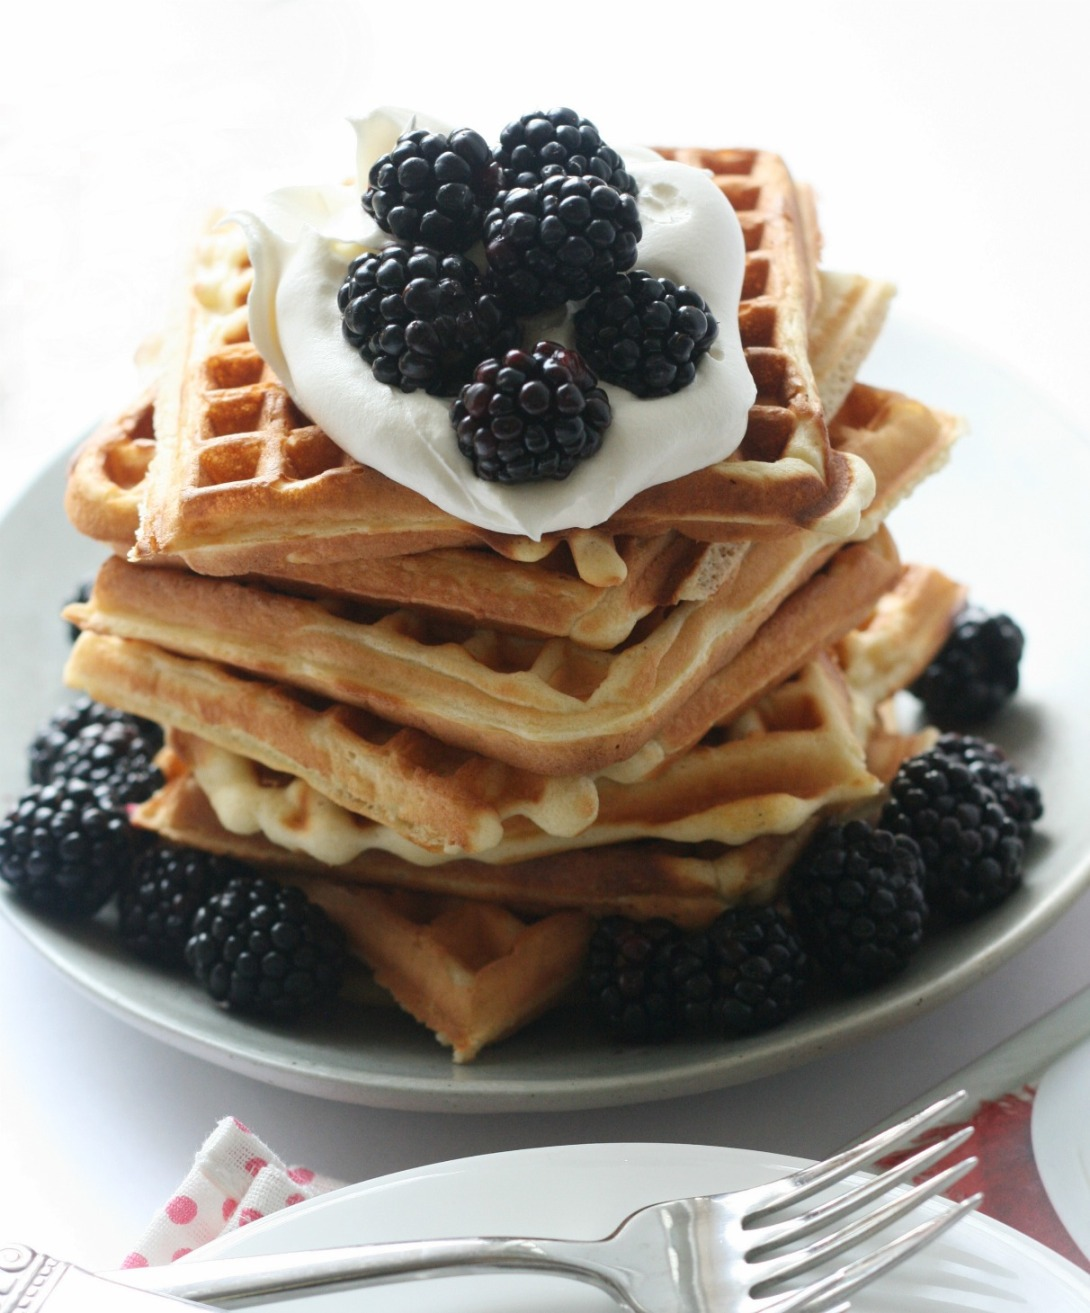 Pancakes and Waffles (lemon waffles)